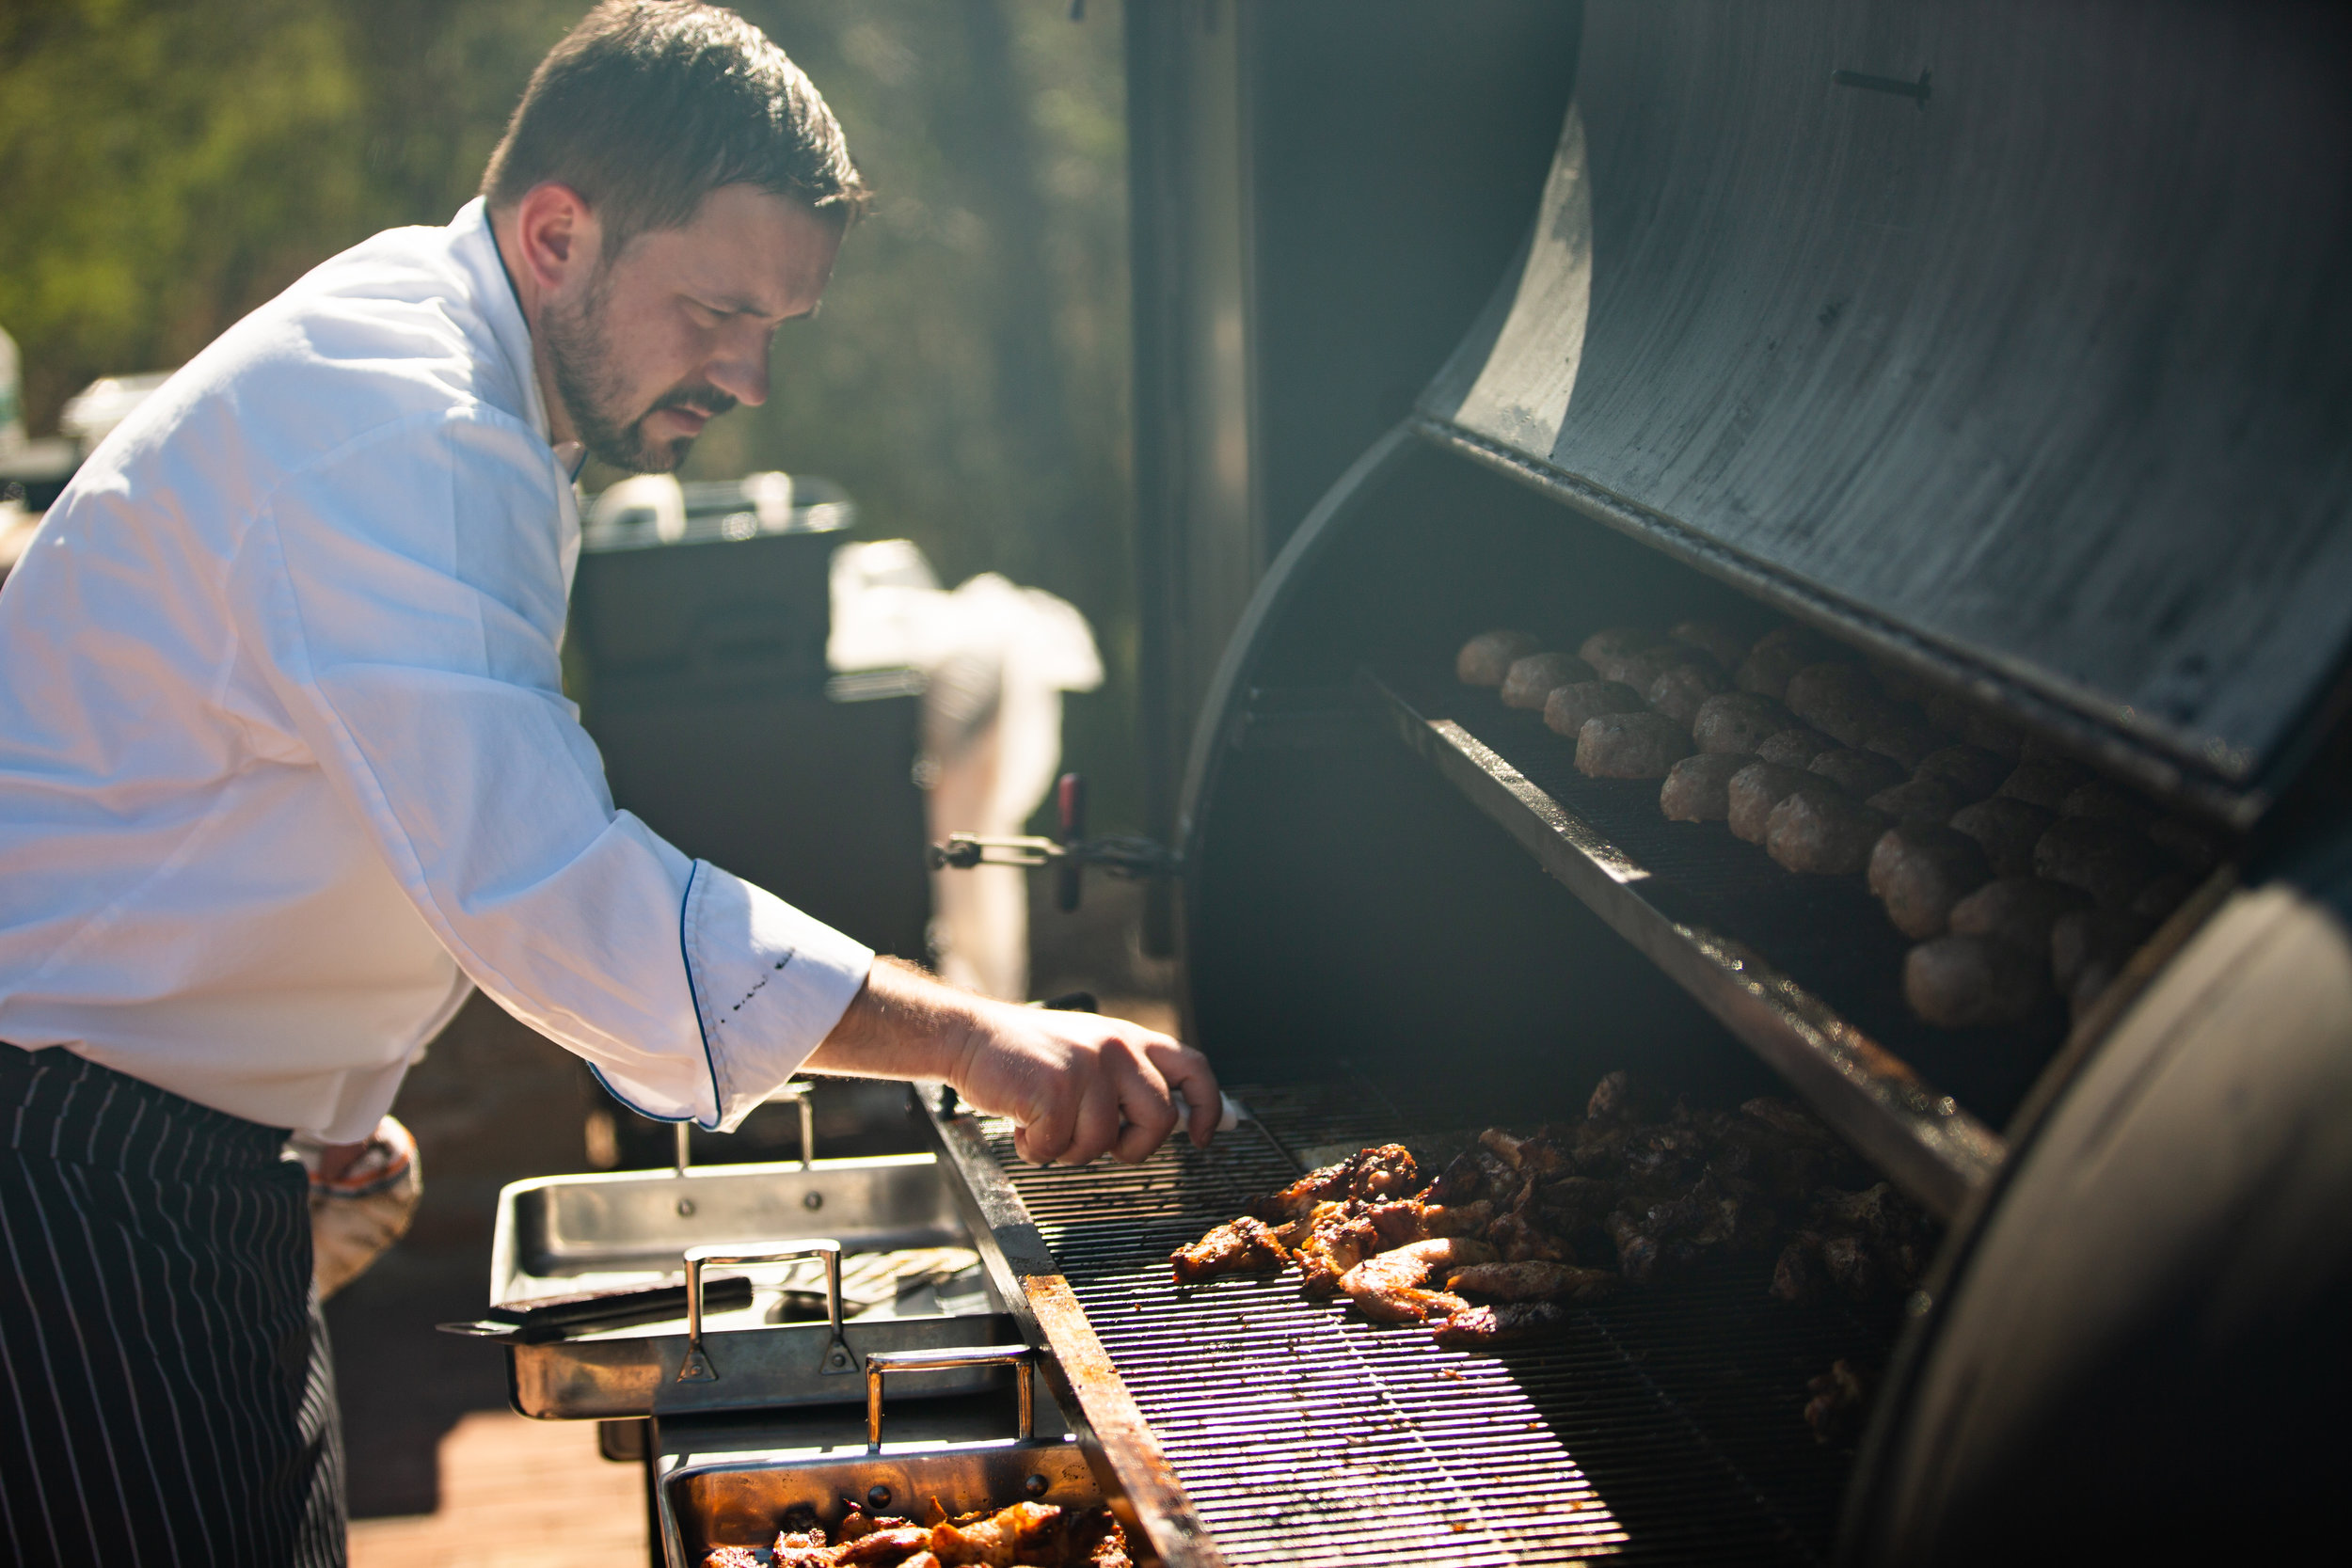 Chef Salvatore Riccobono - I come from a large family and have always been inspired by the joy of a great meal and celebrating life's moments with the people that I love.  I grew up and later started my career as a chef in the Princeton area.  After working in New York for many years I returned to Princeton to start my own family, and now a catering company.  I enjoy cultivating relationships with farmers and local businesses and showcasing their ingredients in my dishes.  I am passionate about honestly prepared food, outdoor cooking and bringing people together.